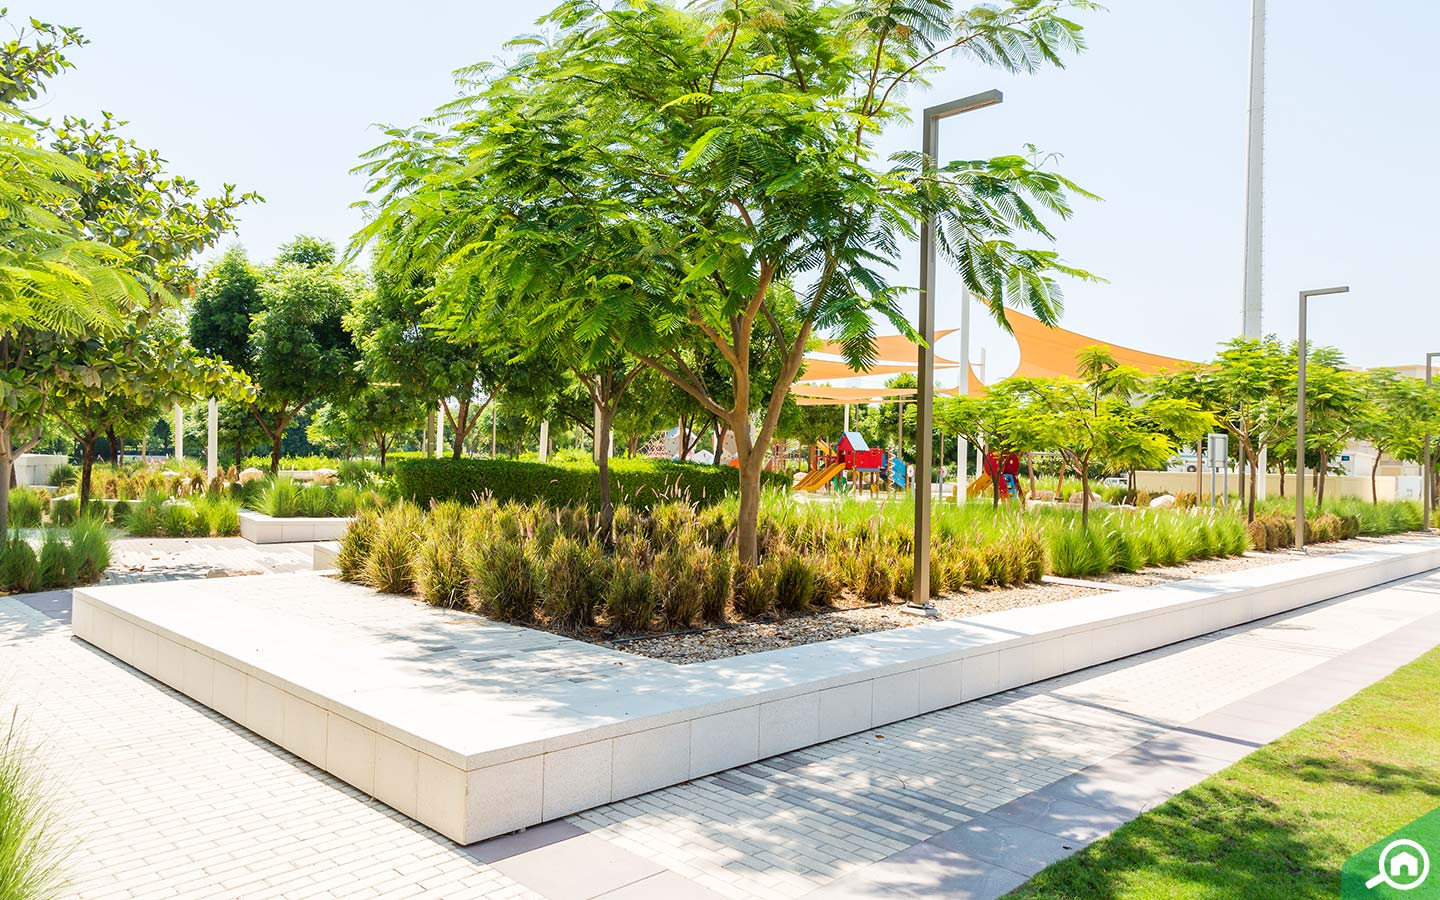 grassy parks in Emirates Hills